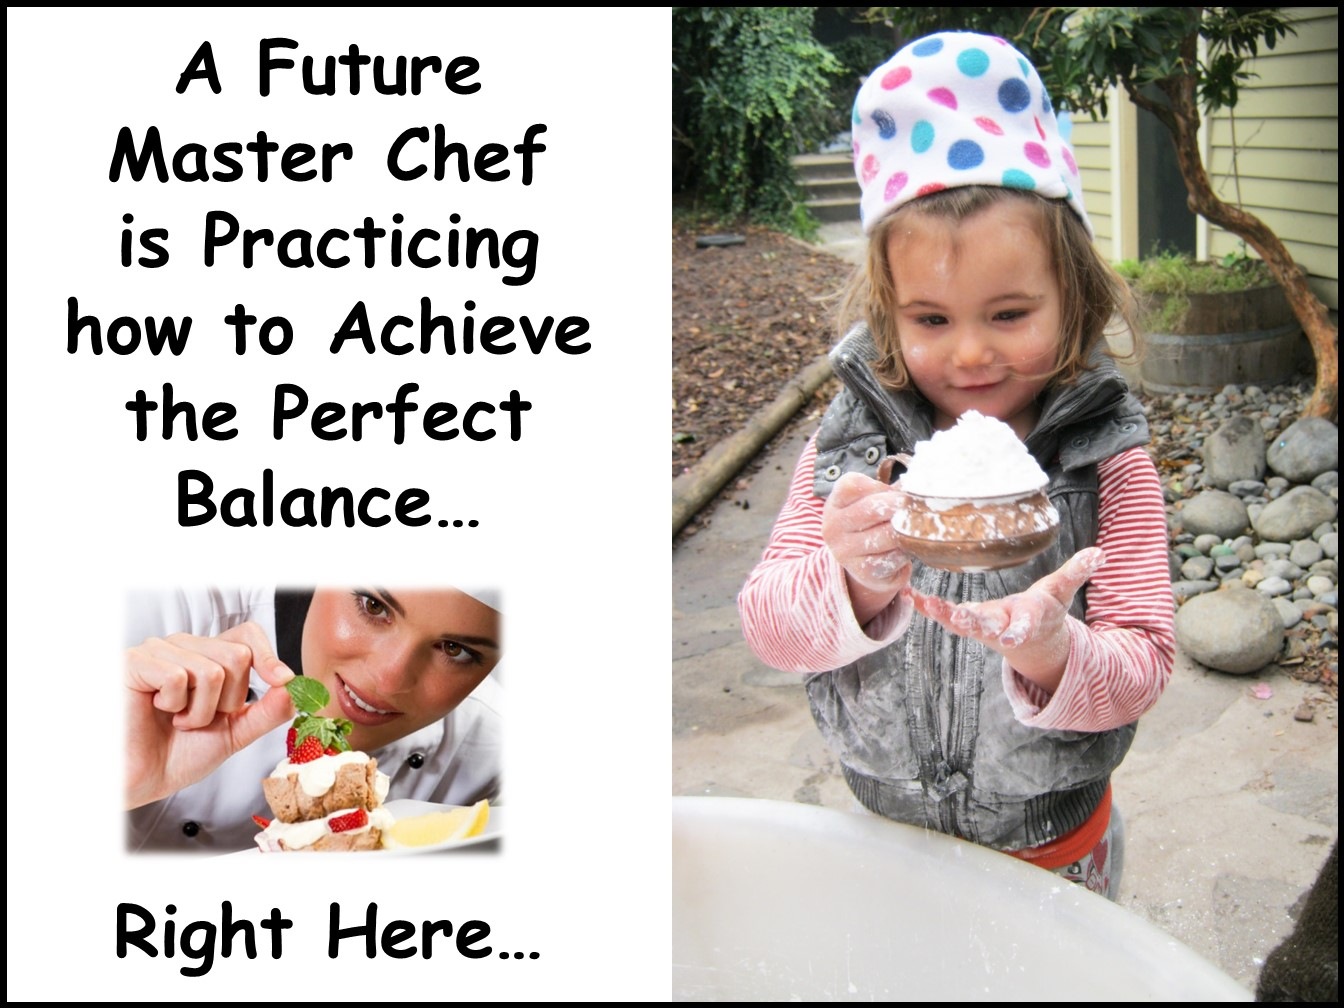 Kindy all about children, nurture, discoveries, ratios, meals and giving the best start near Glendene, Avondale, Huapai, New Lynn, Swanson, Kelston, Titirangi, Kumeu, Waterview, Henderson, Hobsonville, Whenuapai, Te Atatu, Glen Eden, Westgate, Massey, Huia, Laingholm, Waimauku